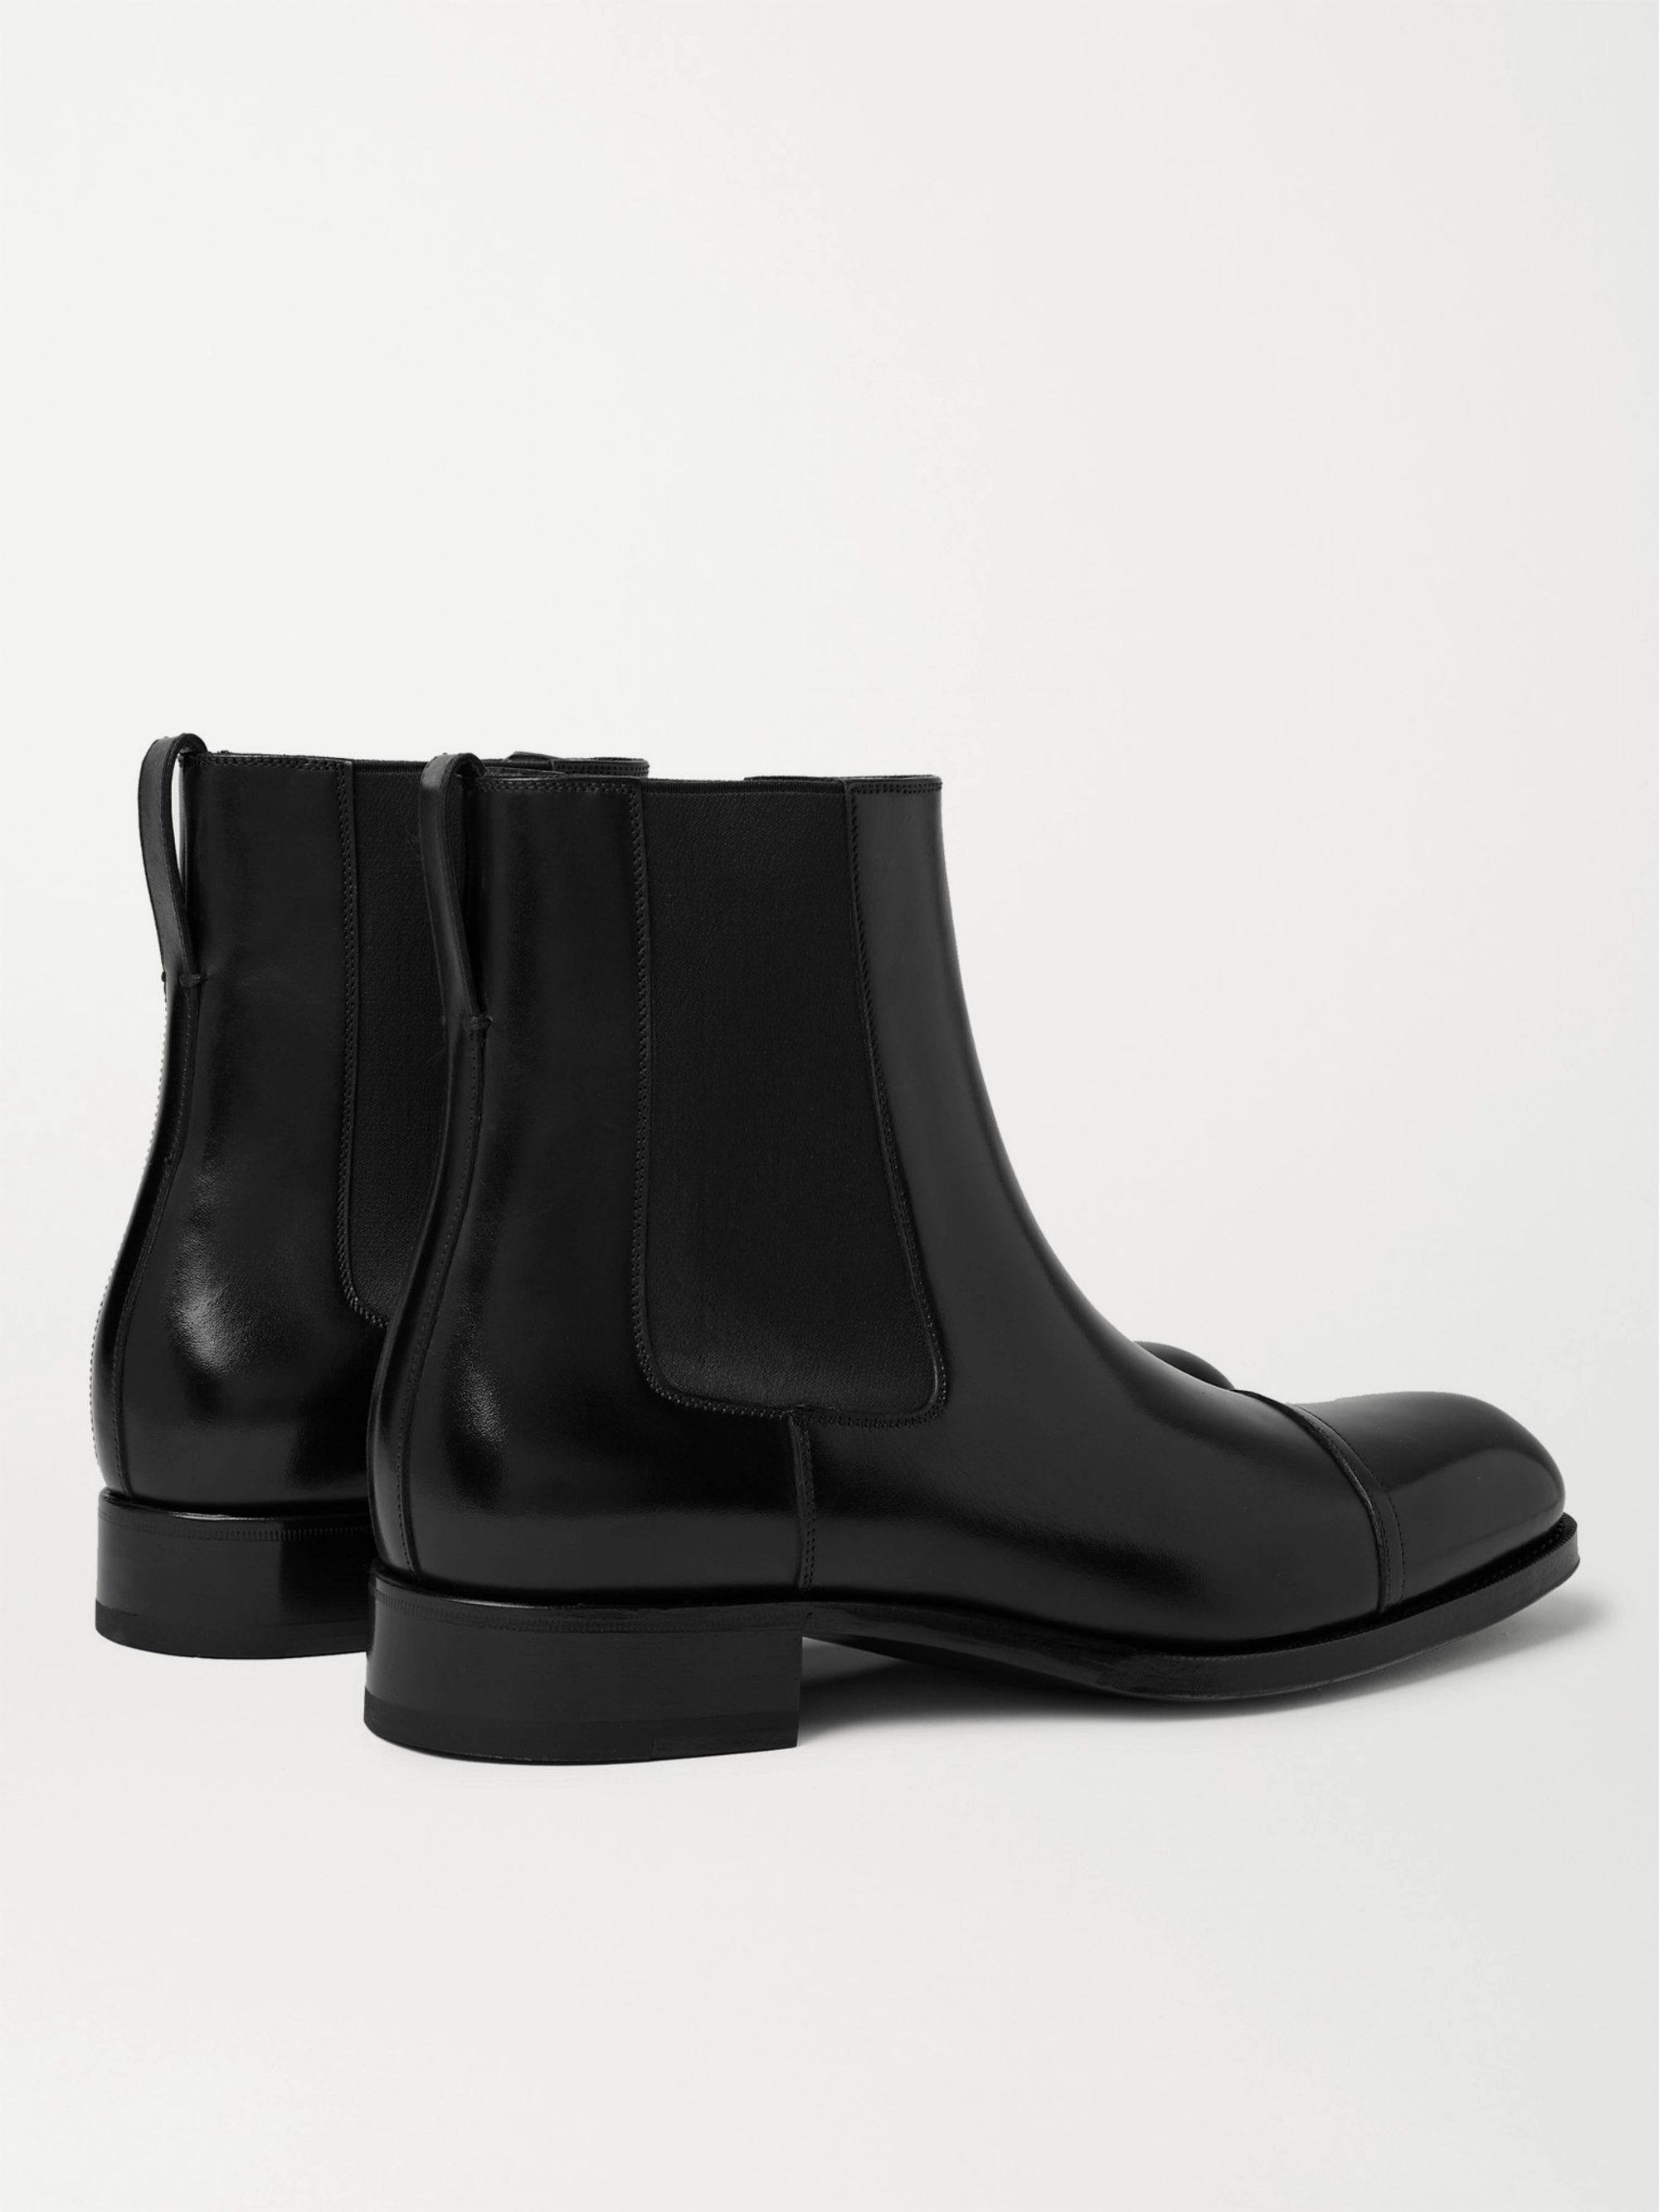 TOM FORD Edgar Cap-Toe Polished-Leather Chelsea Boots